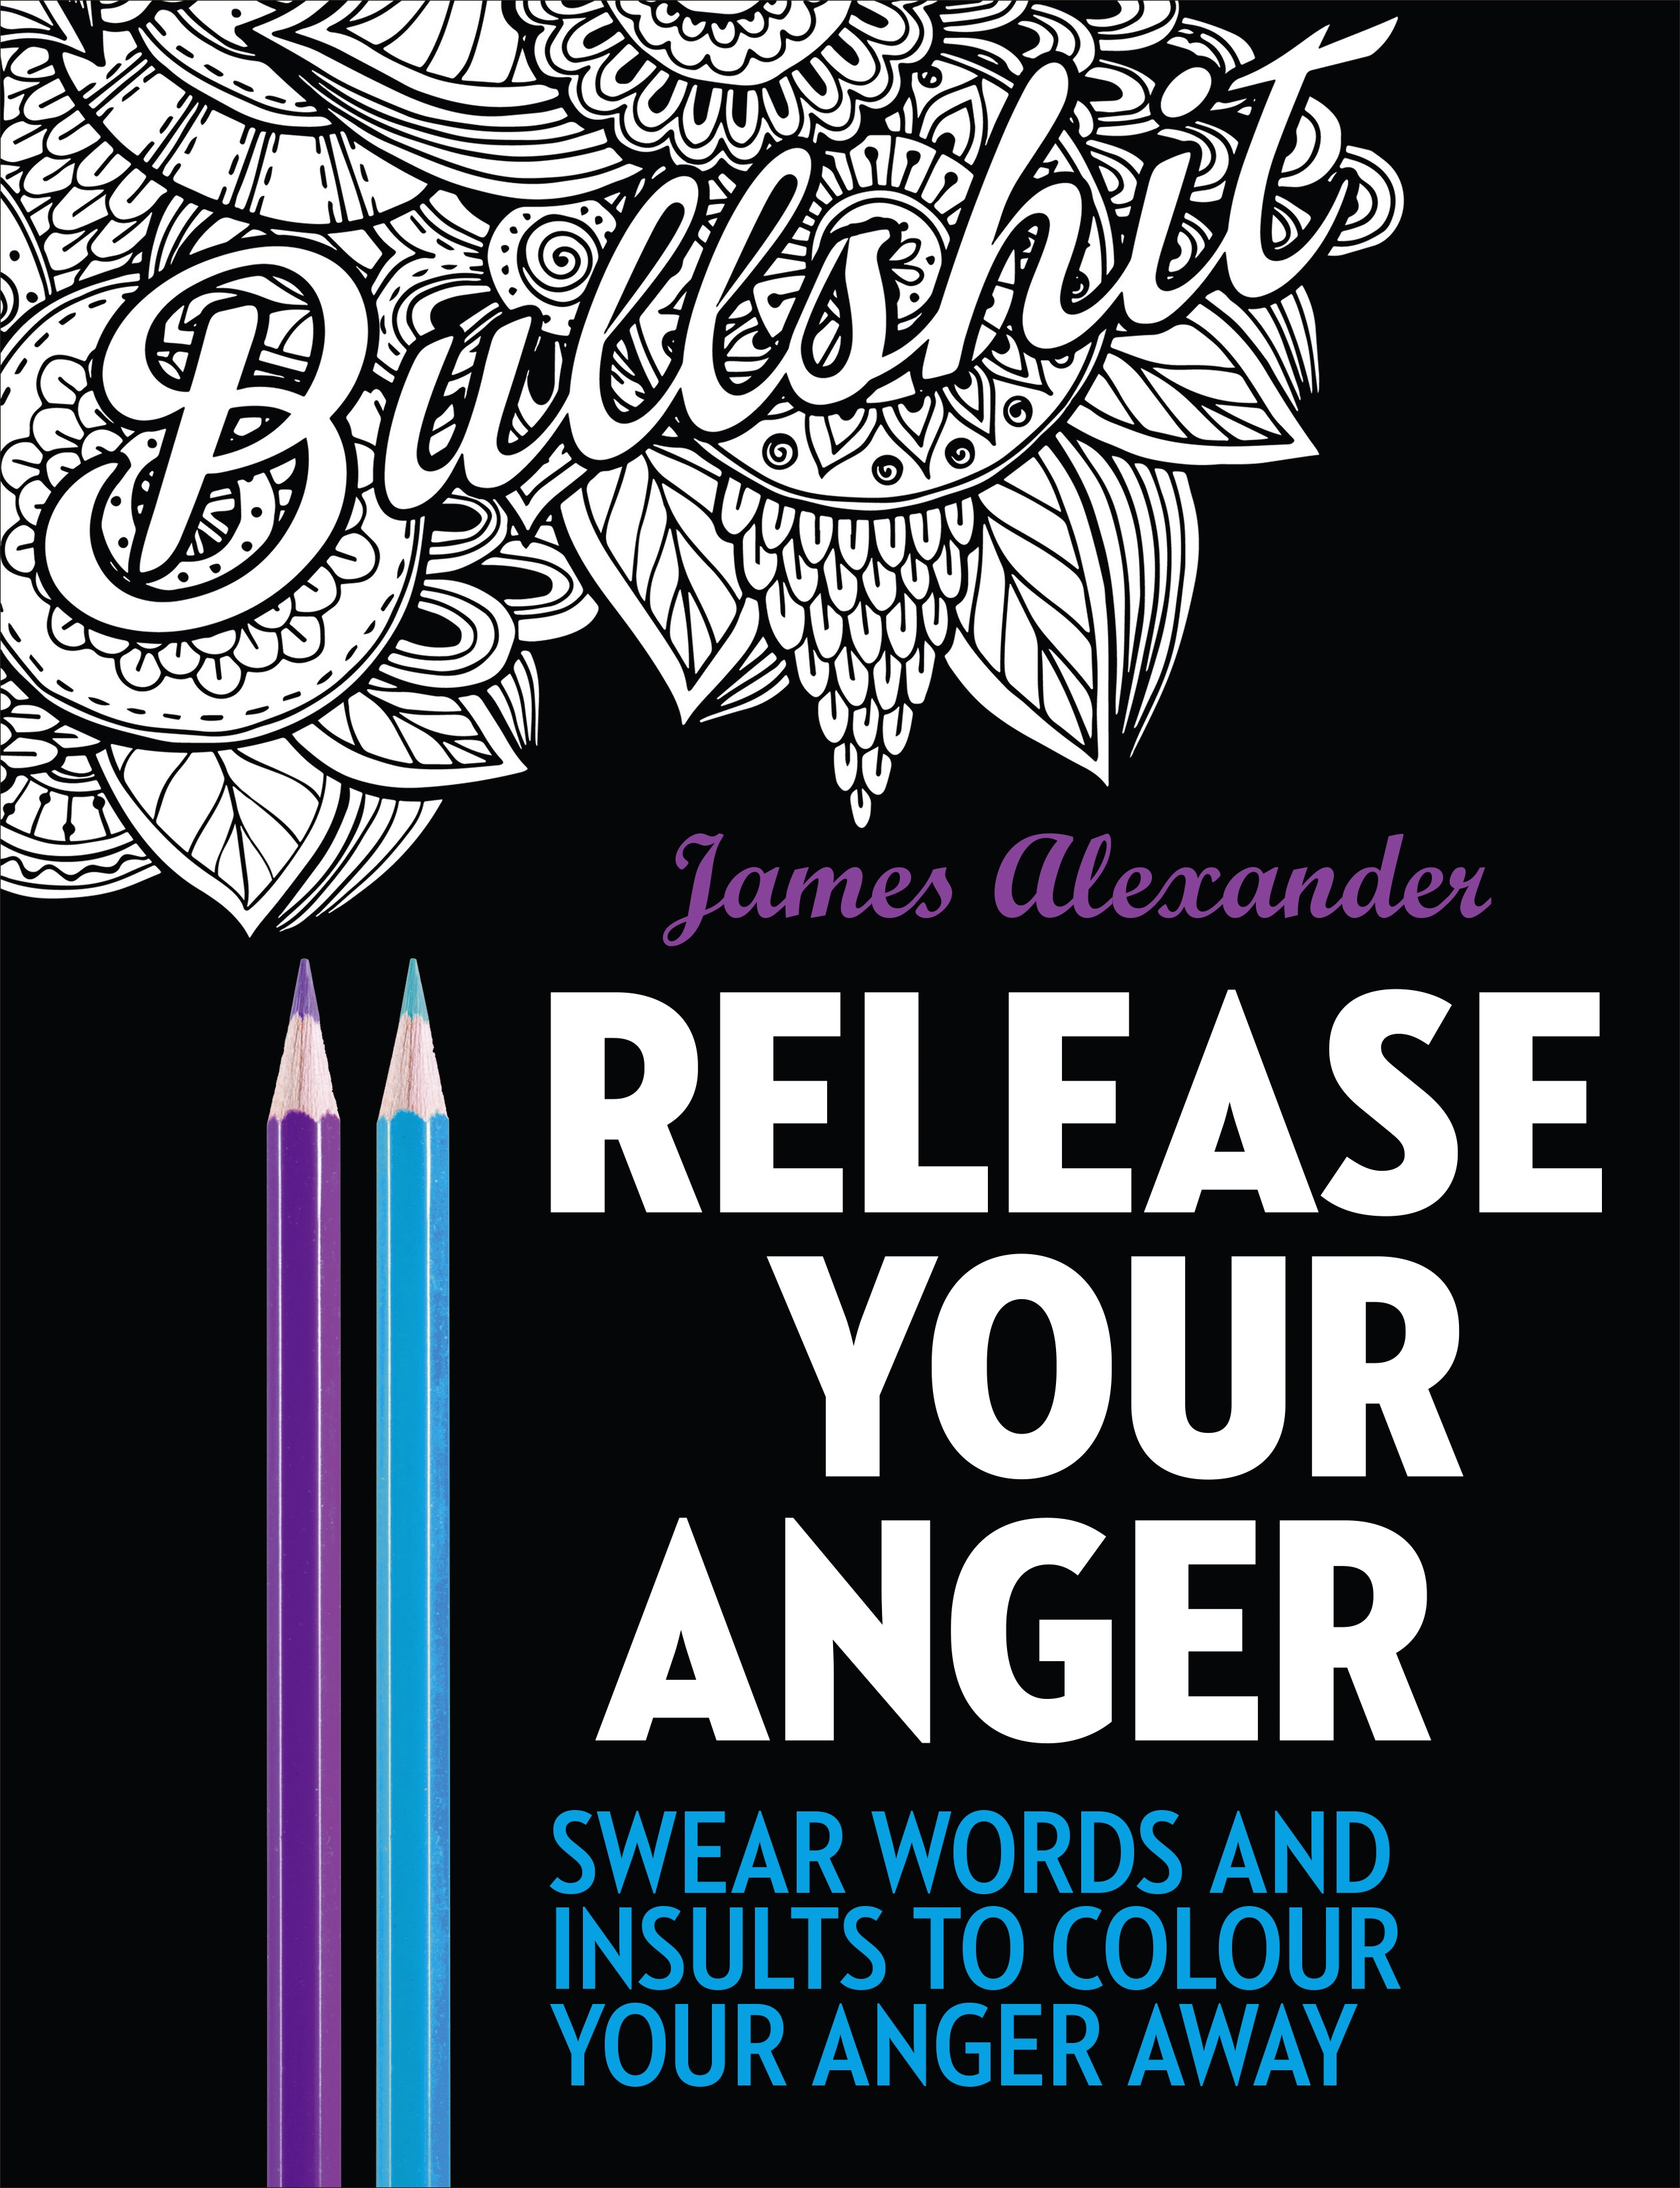 Swearing colouring in book nz - Release your anger midnight edition an adult coloring book with 40 swear words to